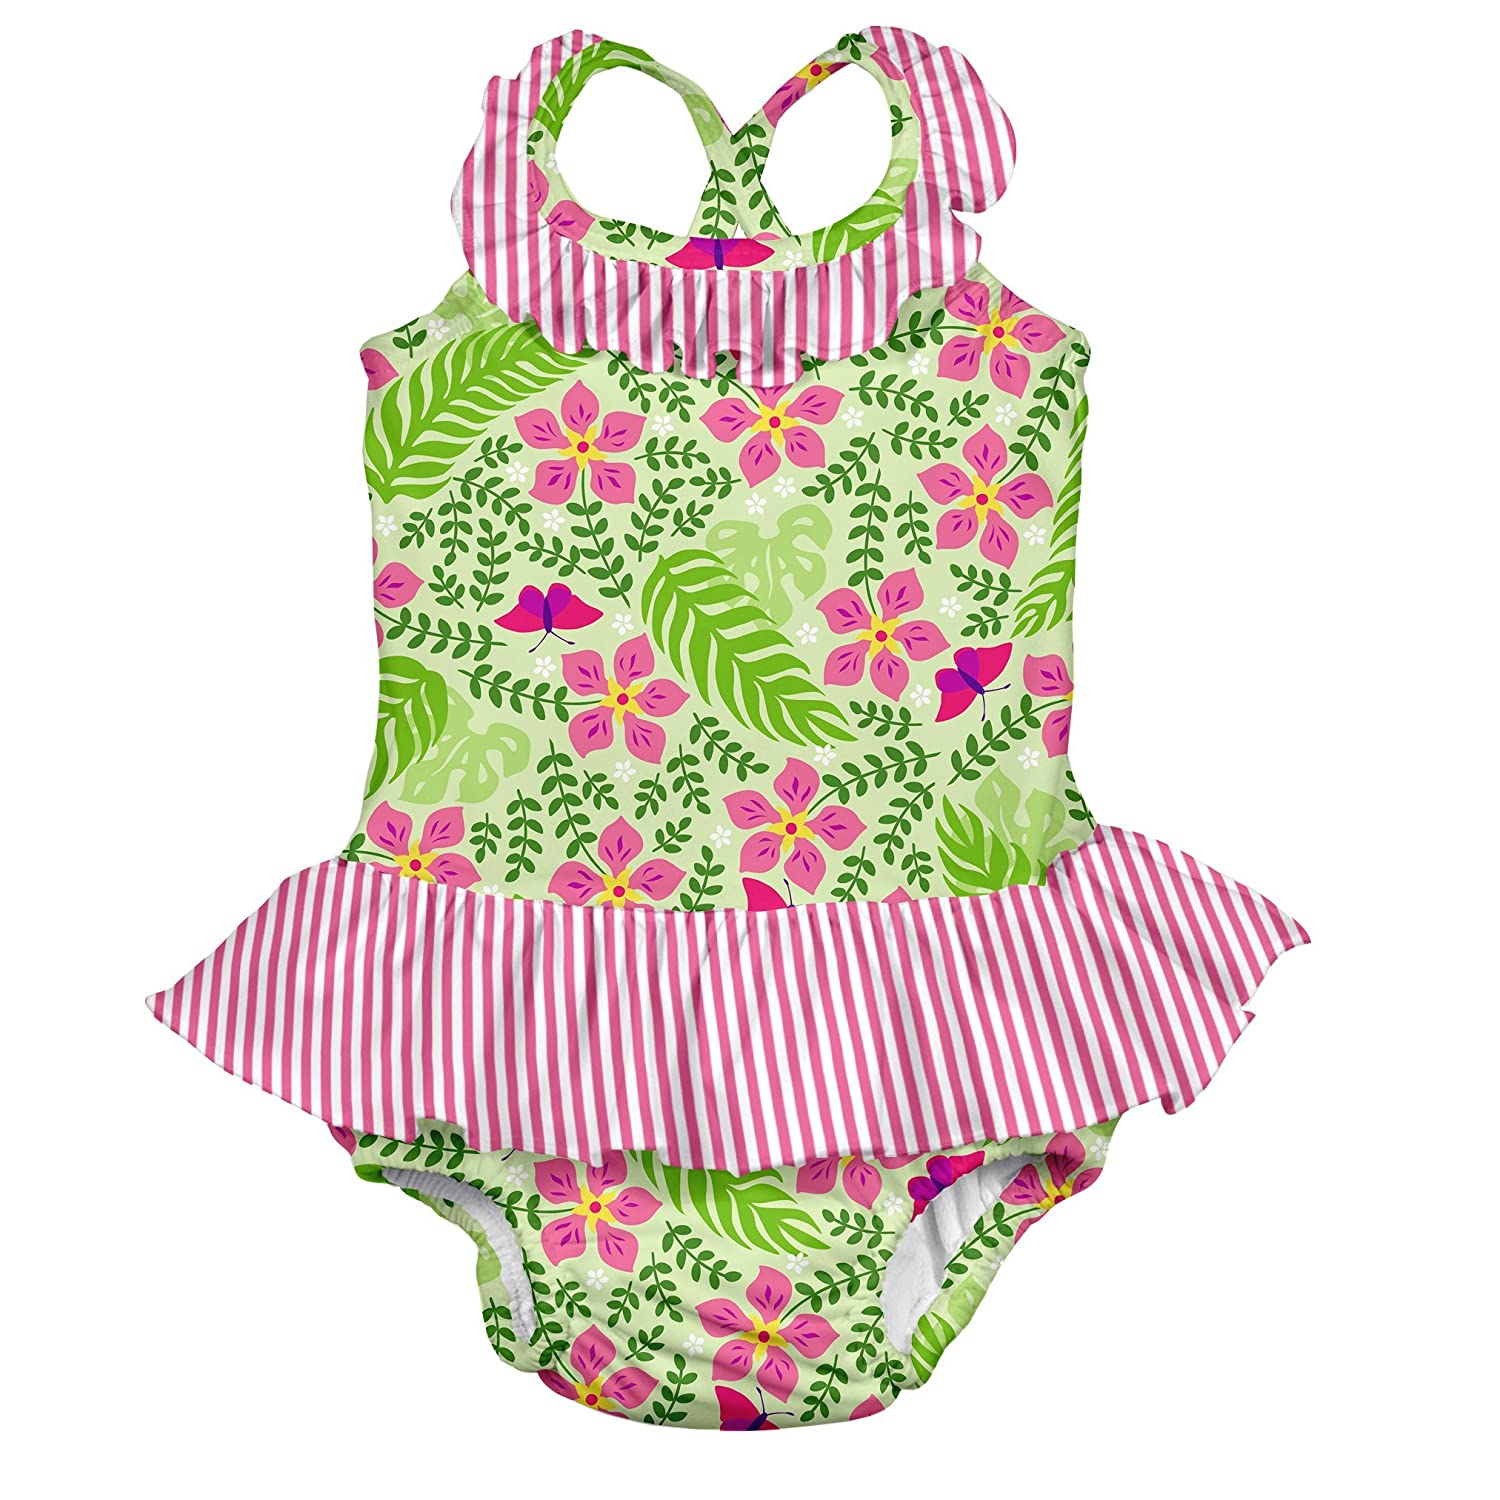 I-Play. Baby Girls' Ruffle Swimsuit with Built-In Reusable Absorbent Swim Diaper Lime Palm Garden 6 Months i play Children's Apparel 712159-2300-45